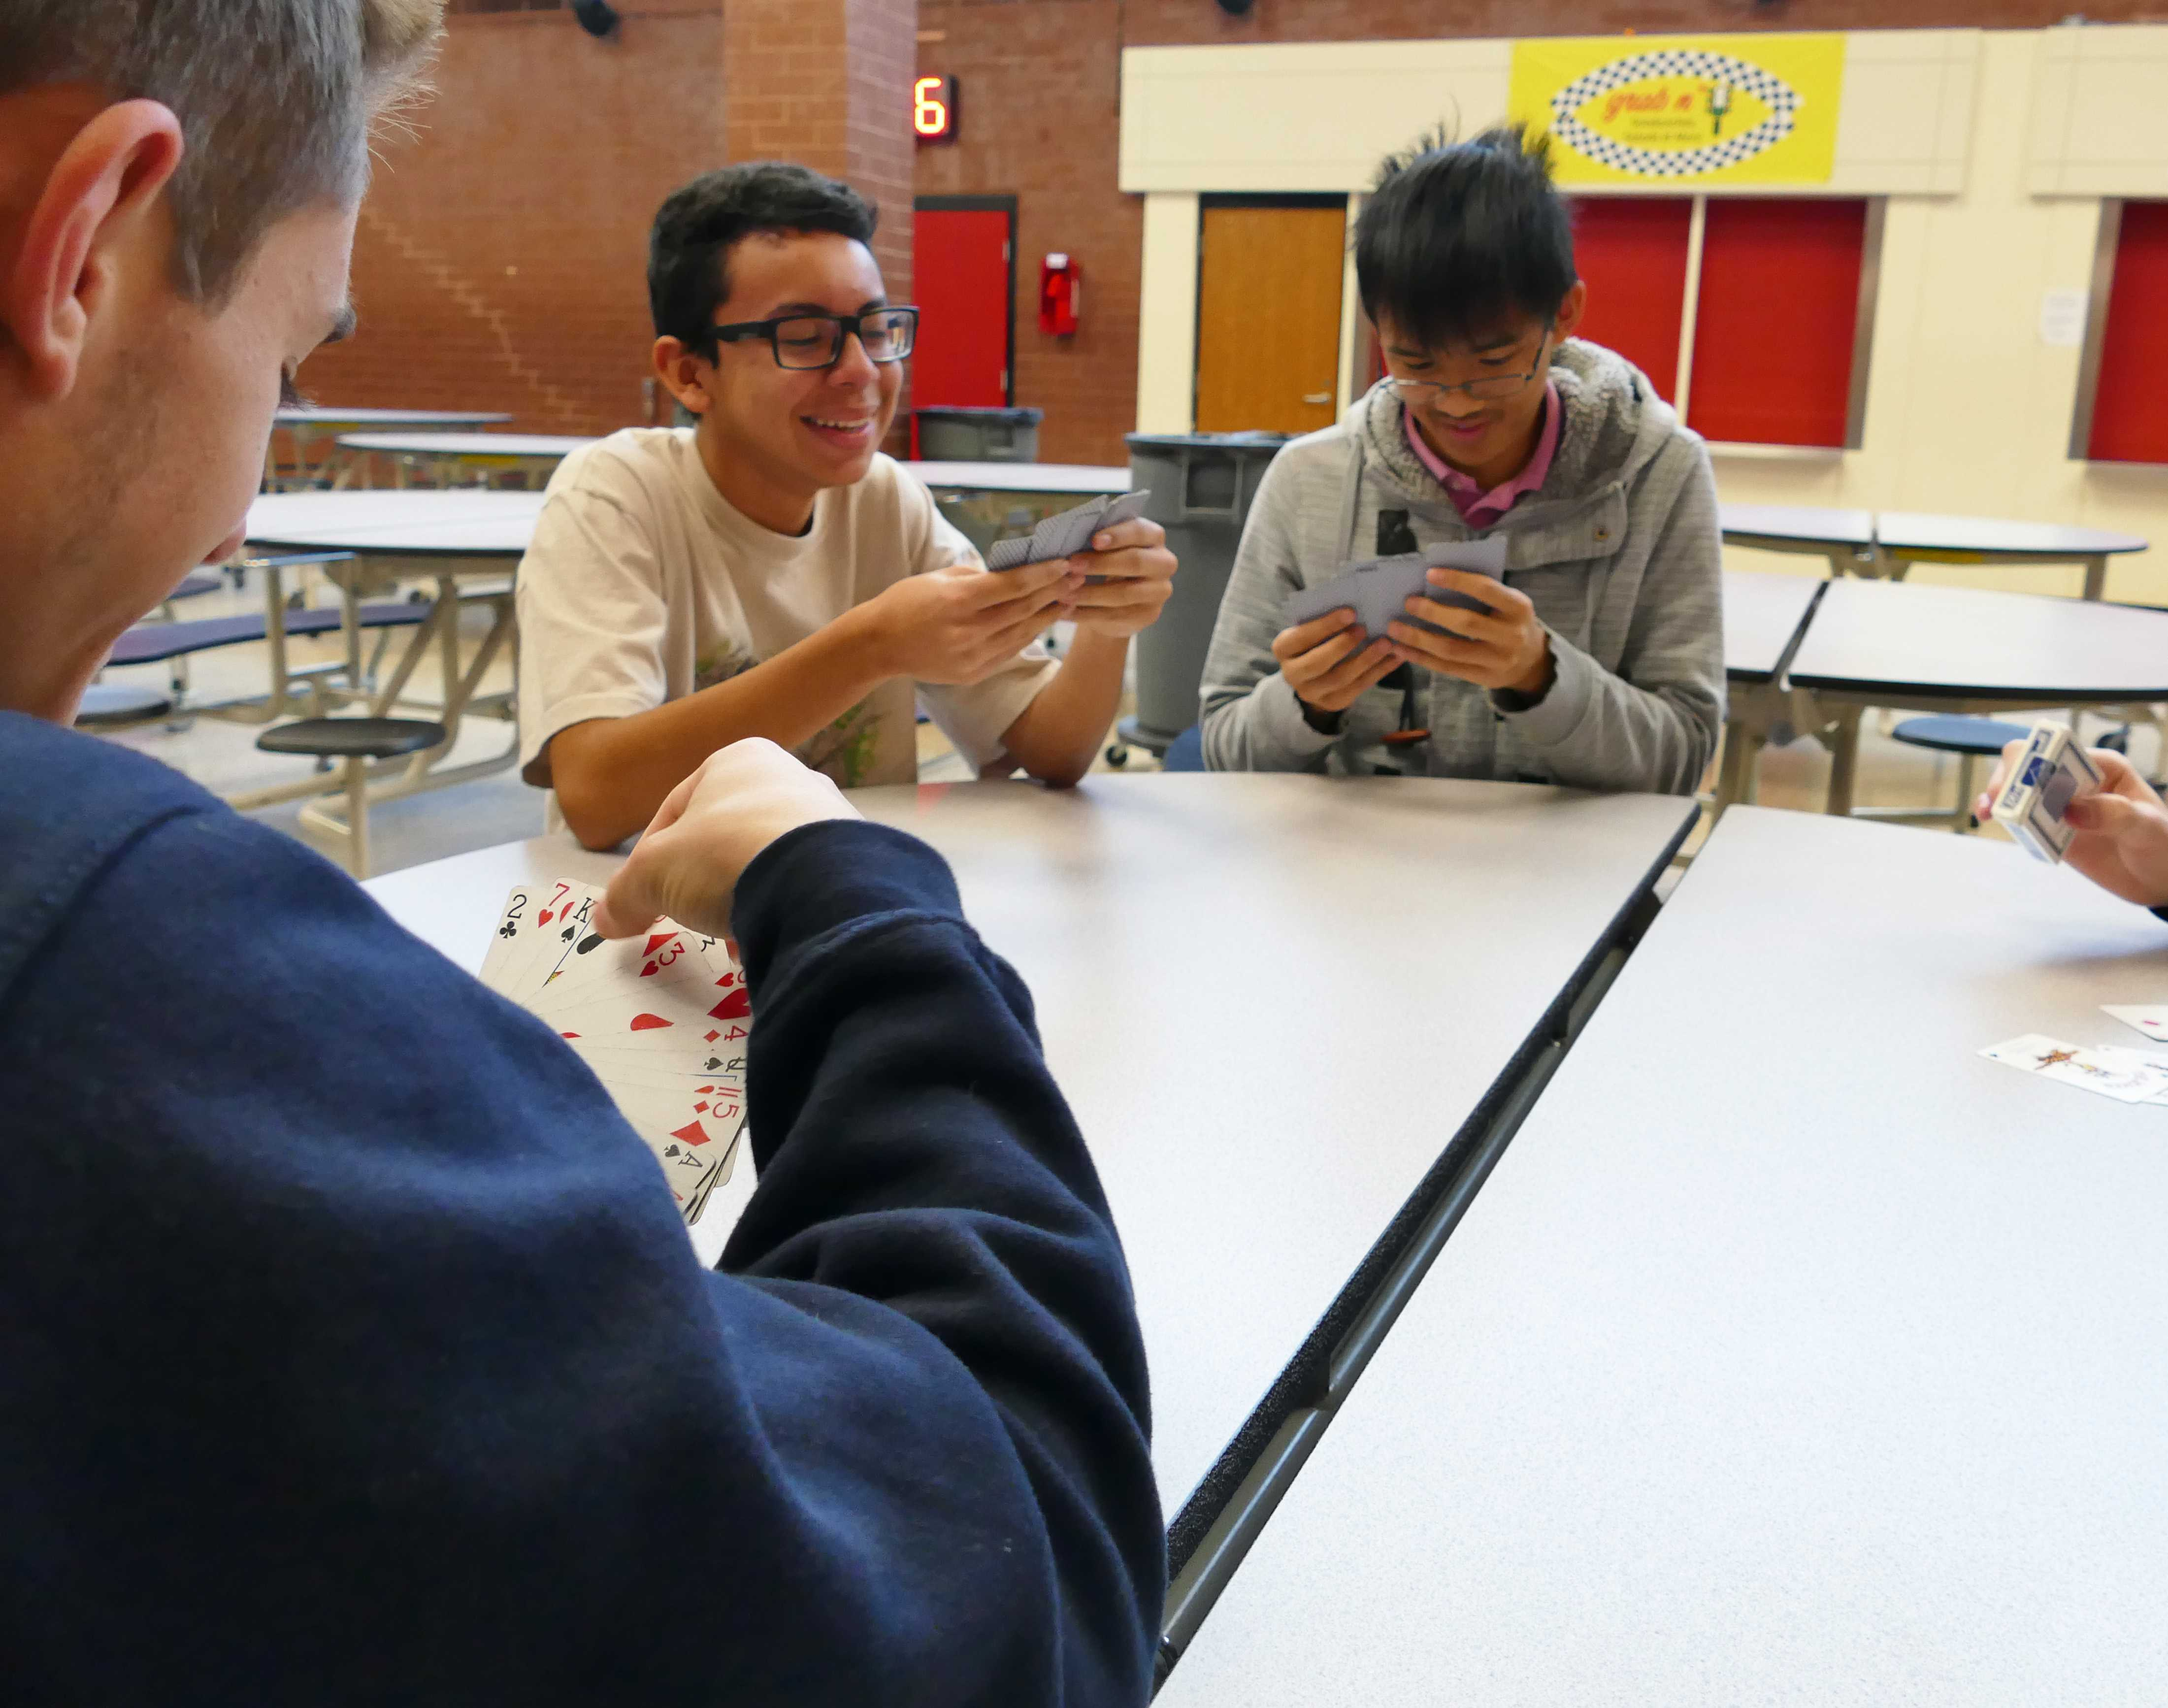 Juniors Jordan Alvarenga (background left) and Kenny Luong (background right) play a card game with senior (foreground) in a moment of relaxation before Thanksgiving Break. Students will not have school from Wednesday, November 22 to Sunday, November 26.